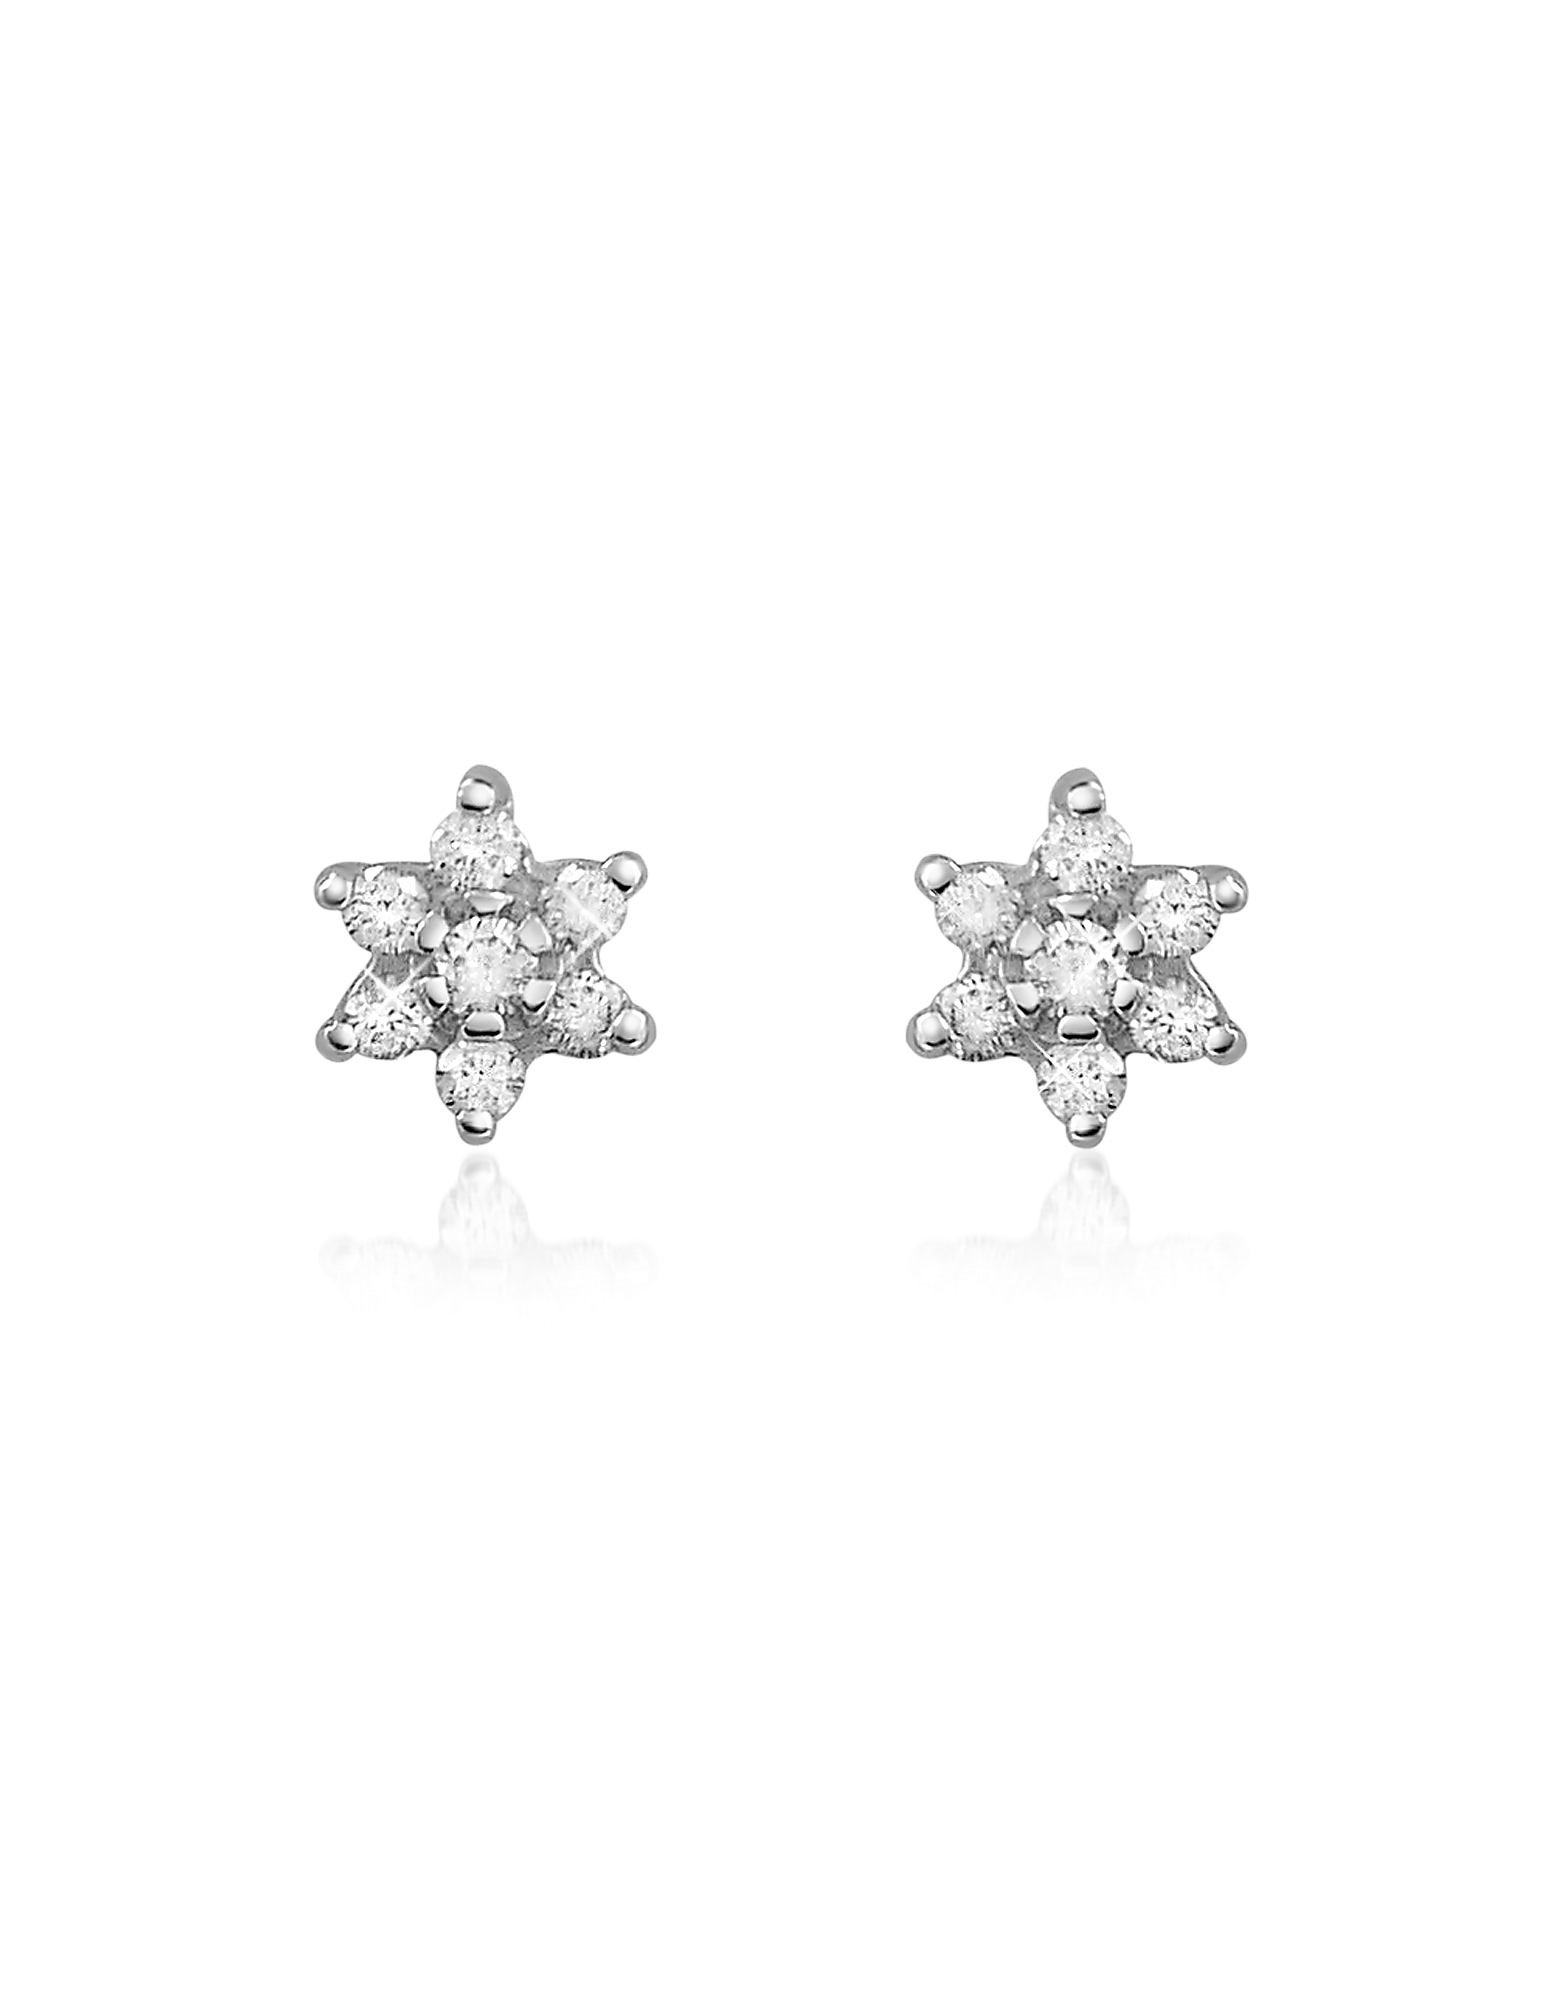 Forzieri Earrings, 0.25 ct Diamond Flower 18K Gold Earrings